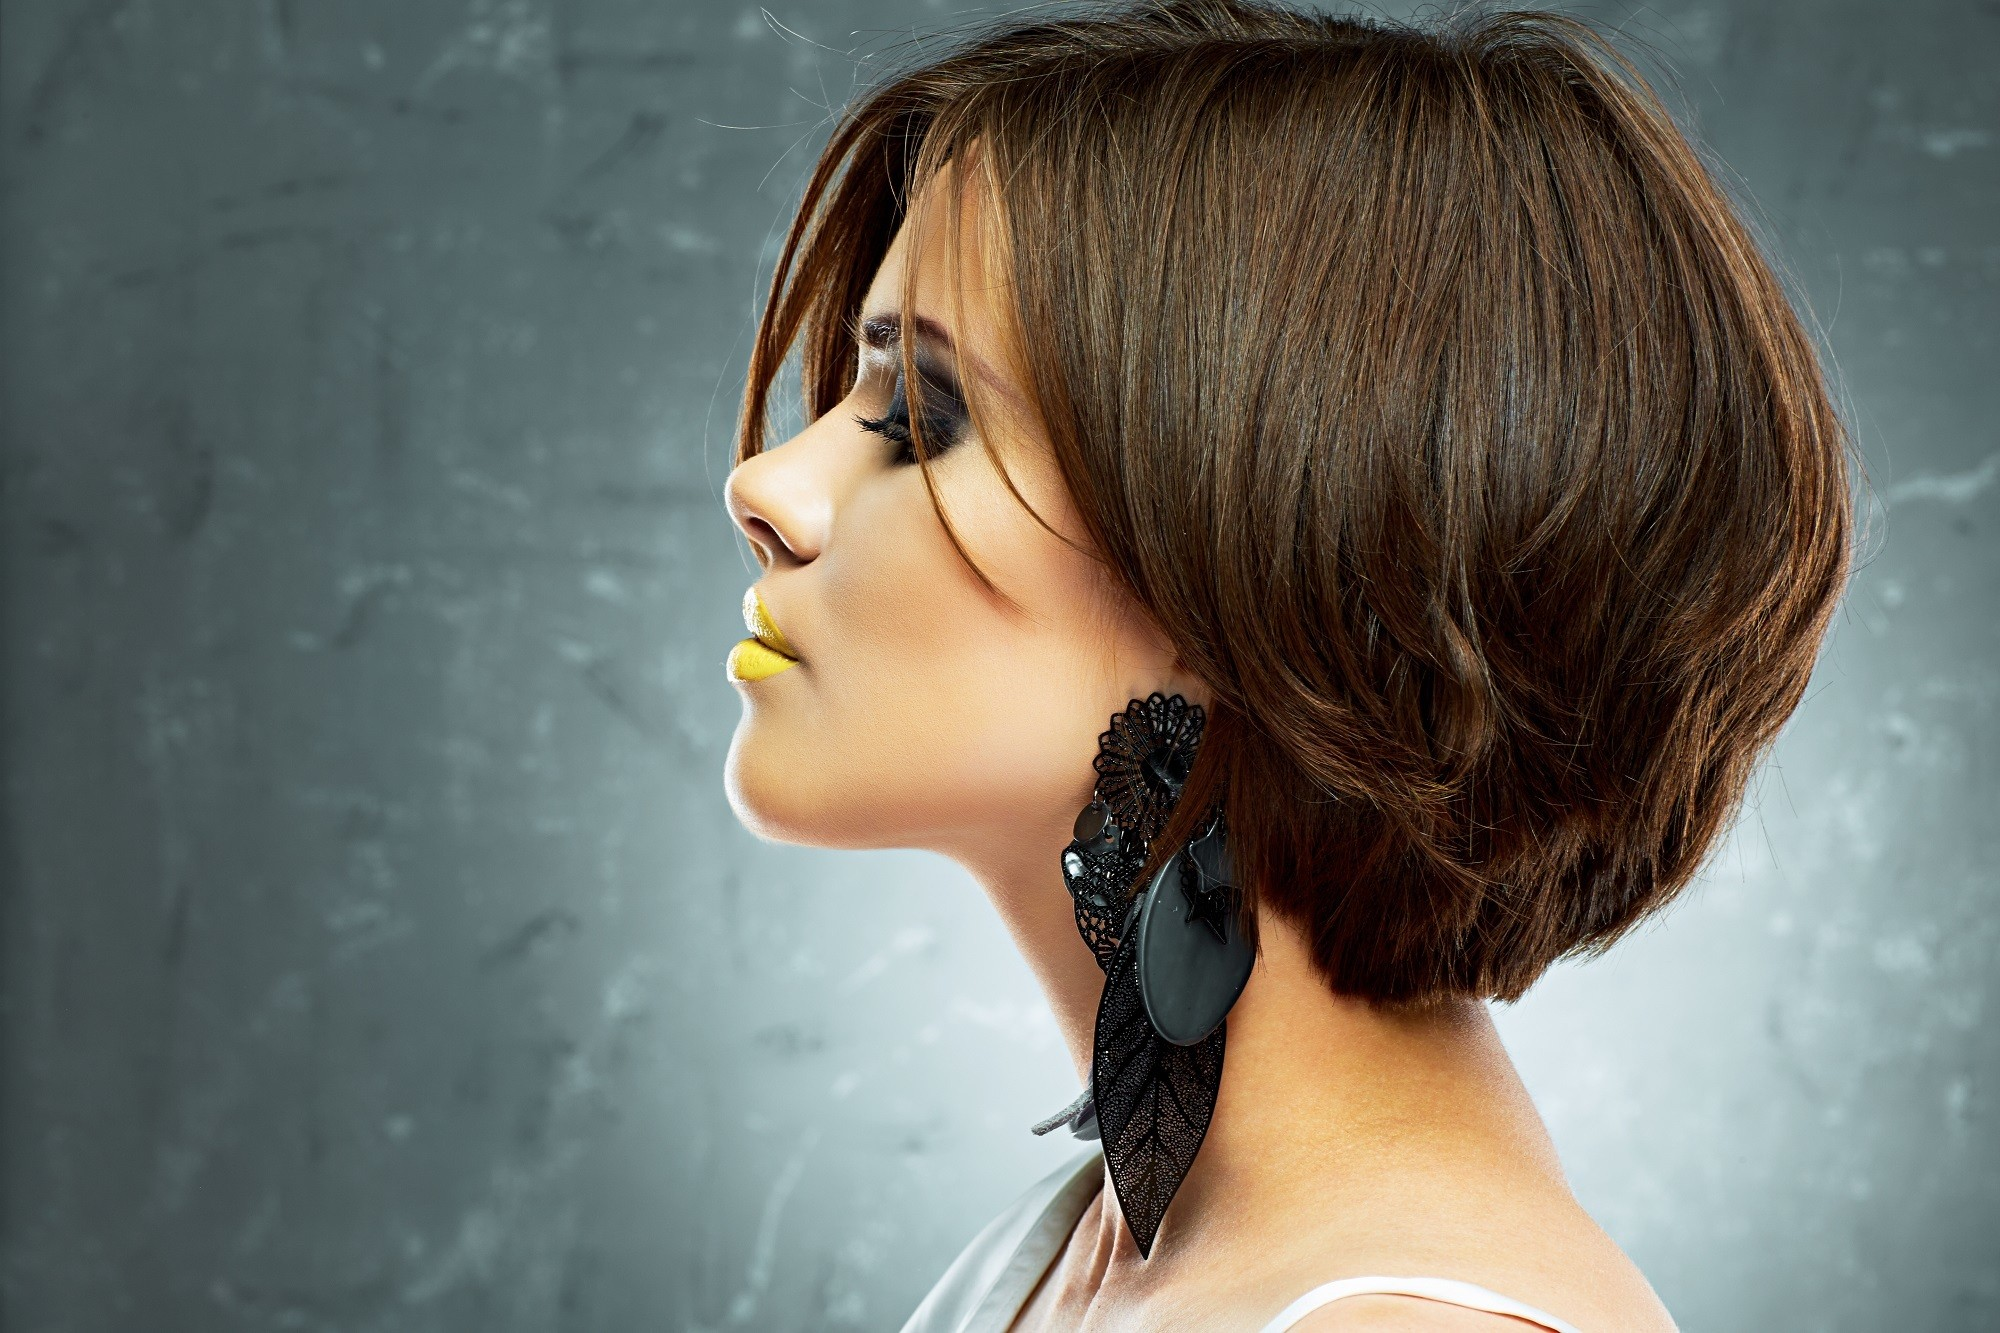 Short hairstyles for thick hair: Layered bob